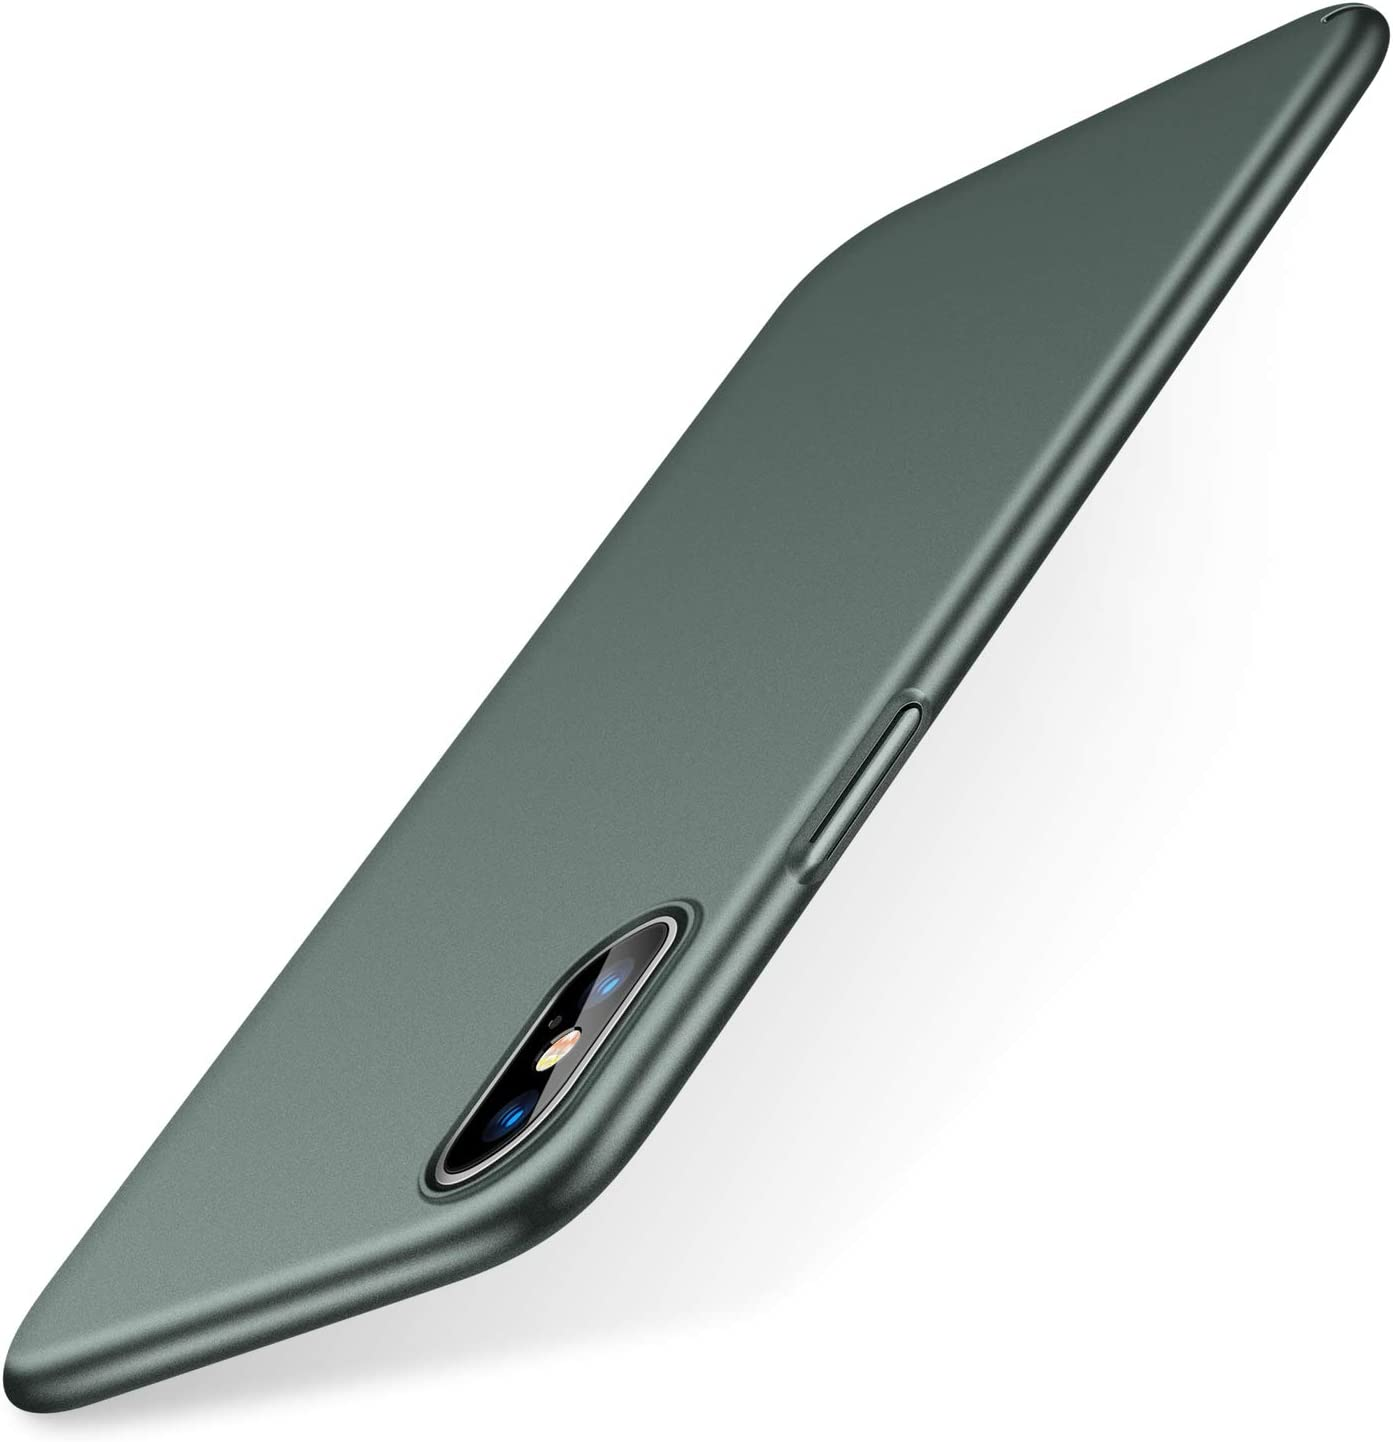 TORRAS Slim Fit iPhone Xs Case/iPhone X Case, Hard Plastic PC Super Thin Mobile Phone Cover Case with Matte Finish Coating Grip Compatible with iPhone X/iPhone Xs 5.8 inch, Midnight Green